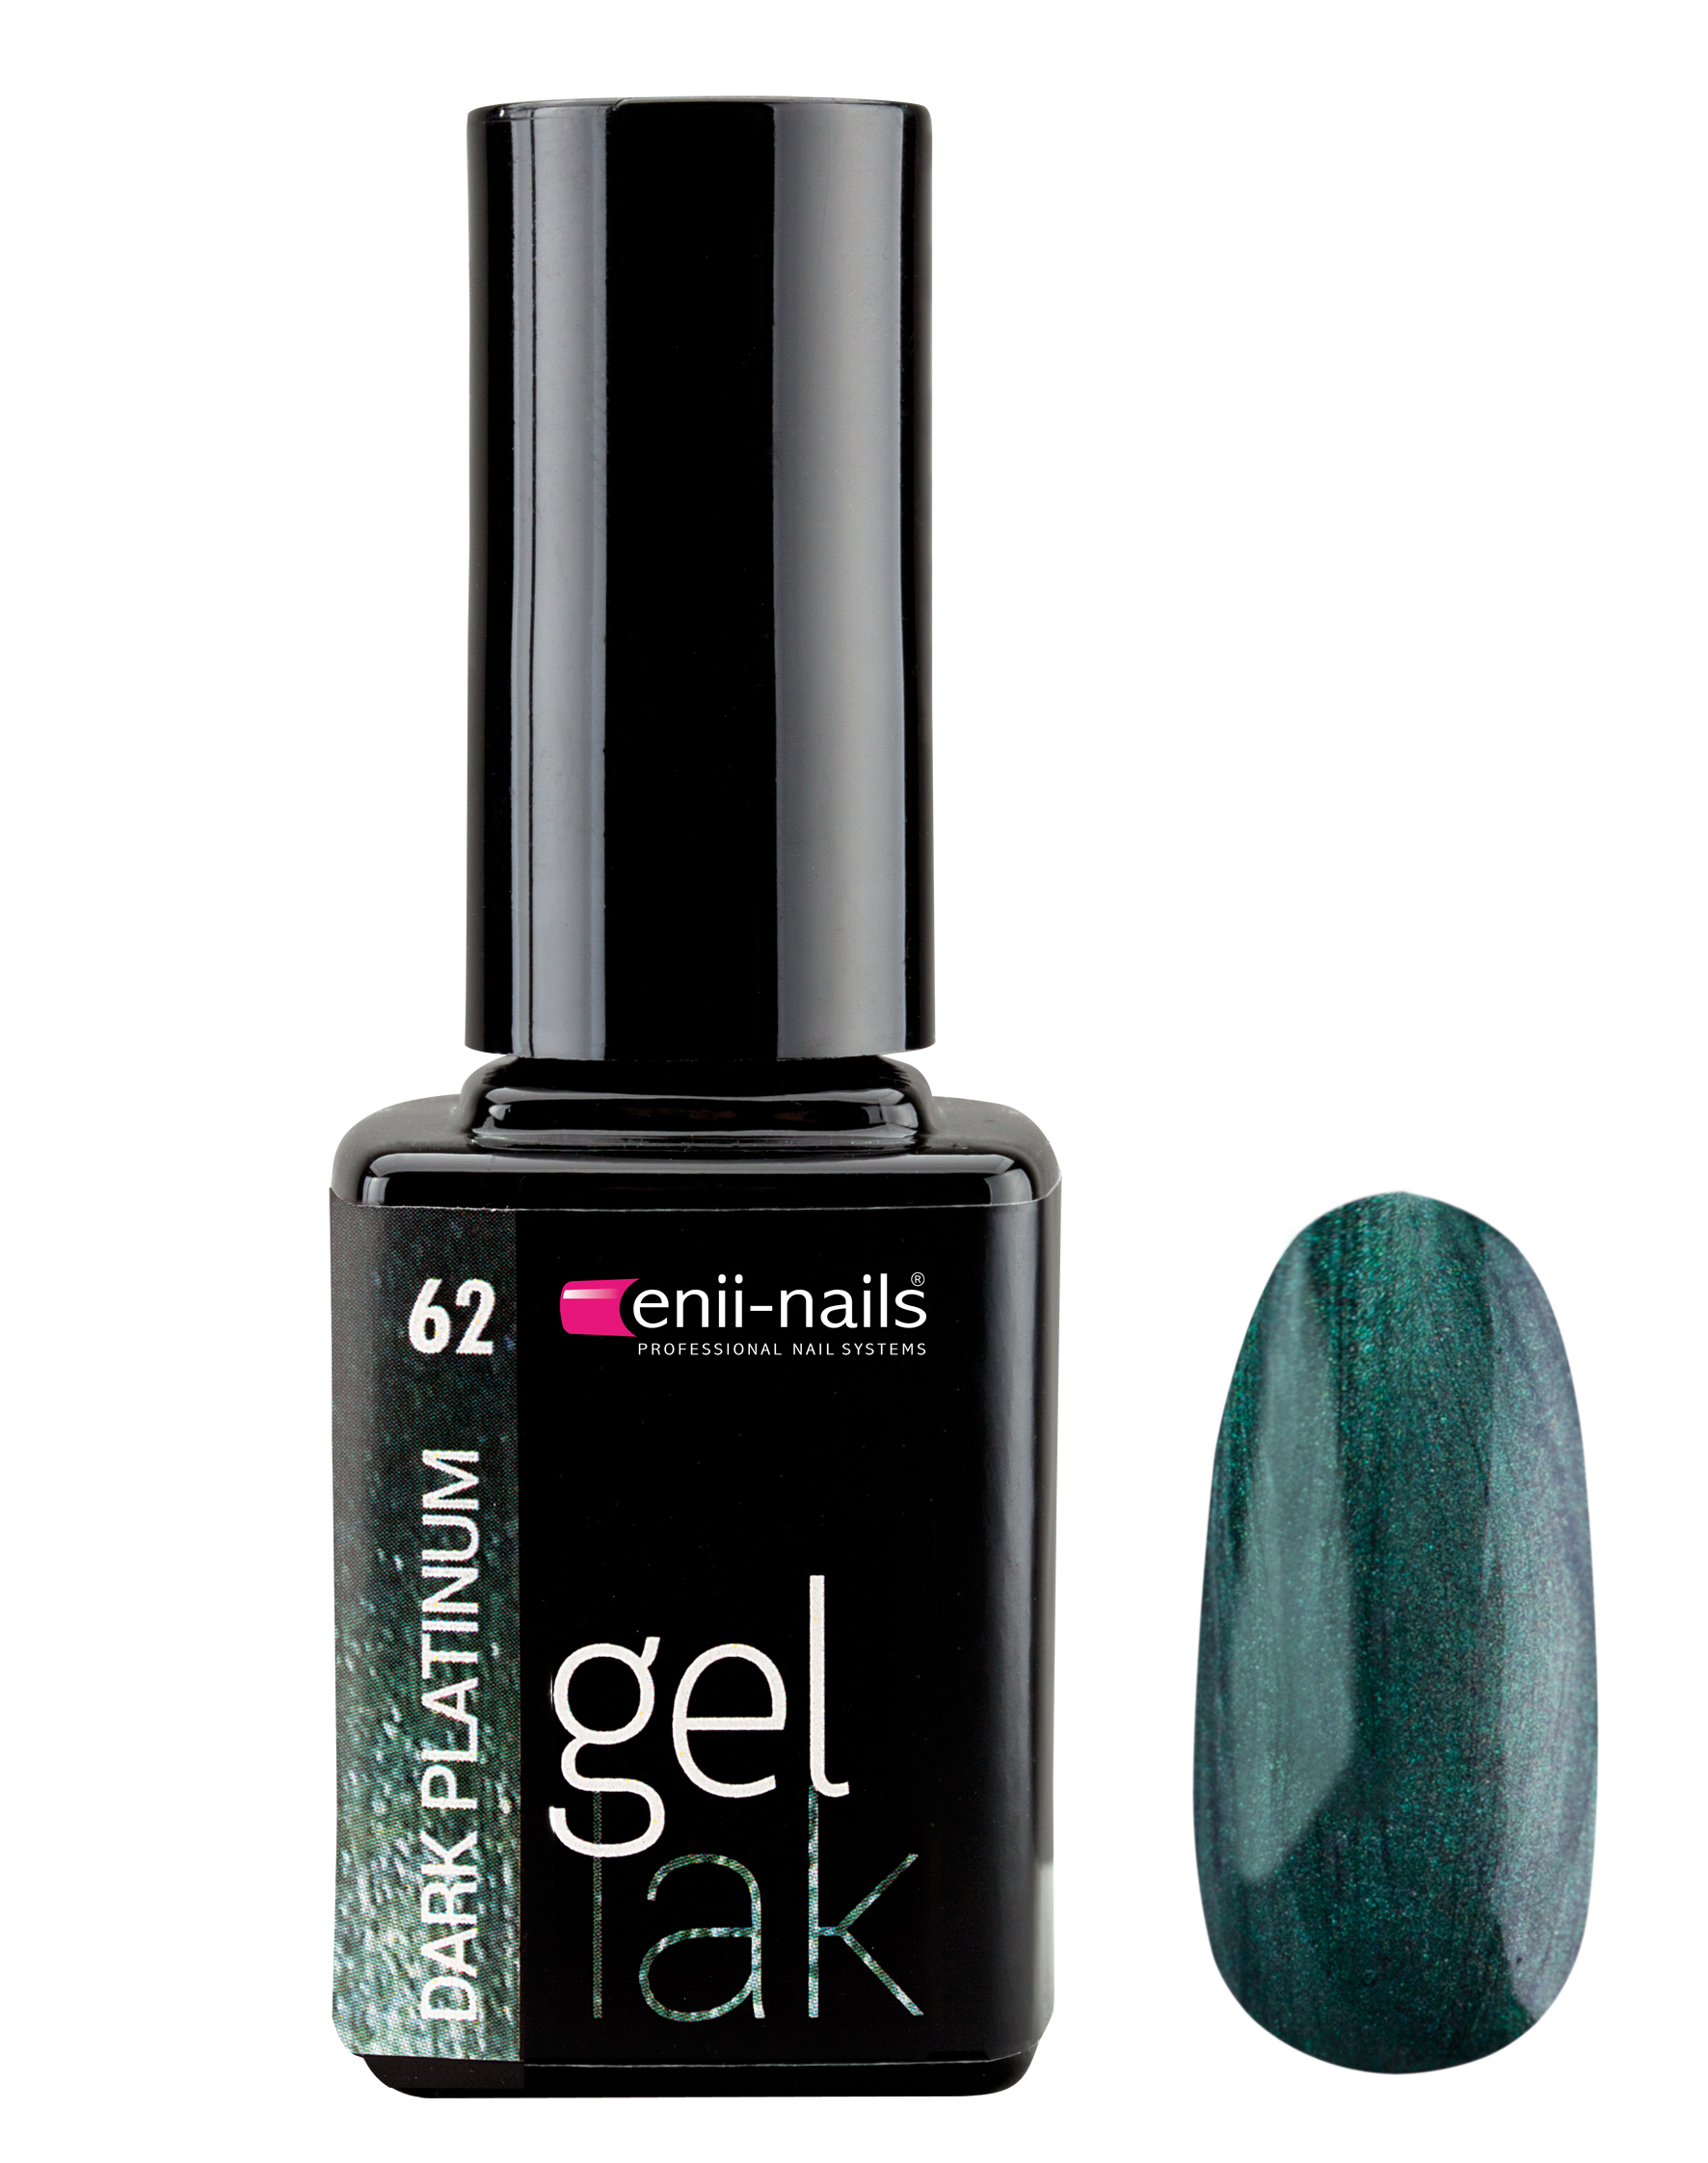 ENII-NAILS Gel lak 11 ml - dark platinum